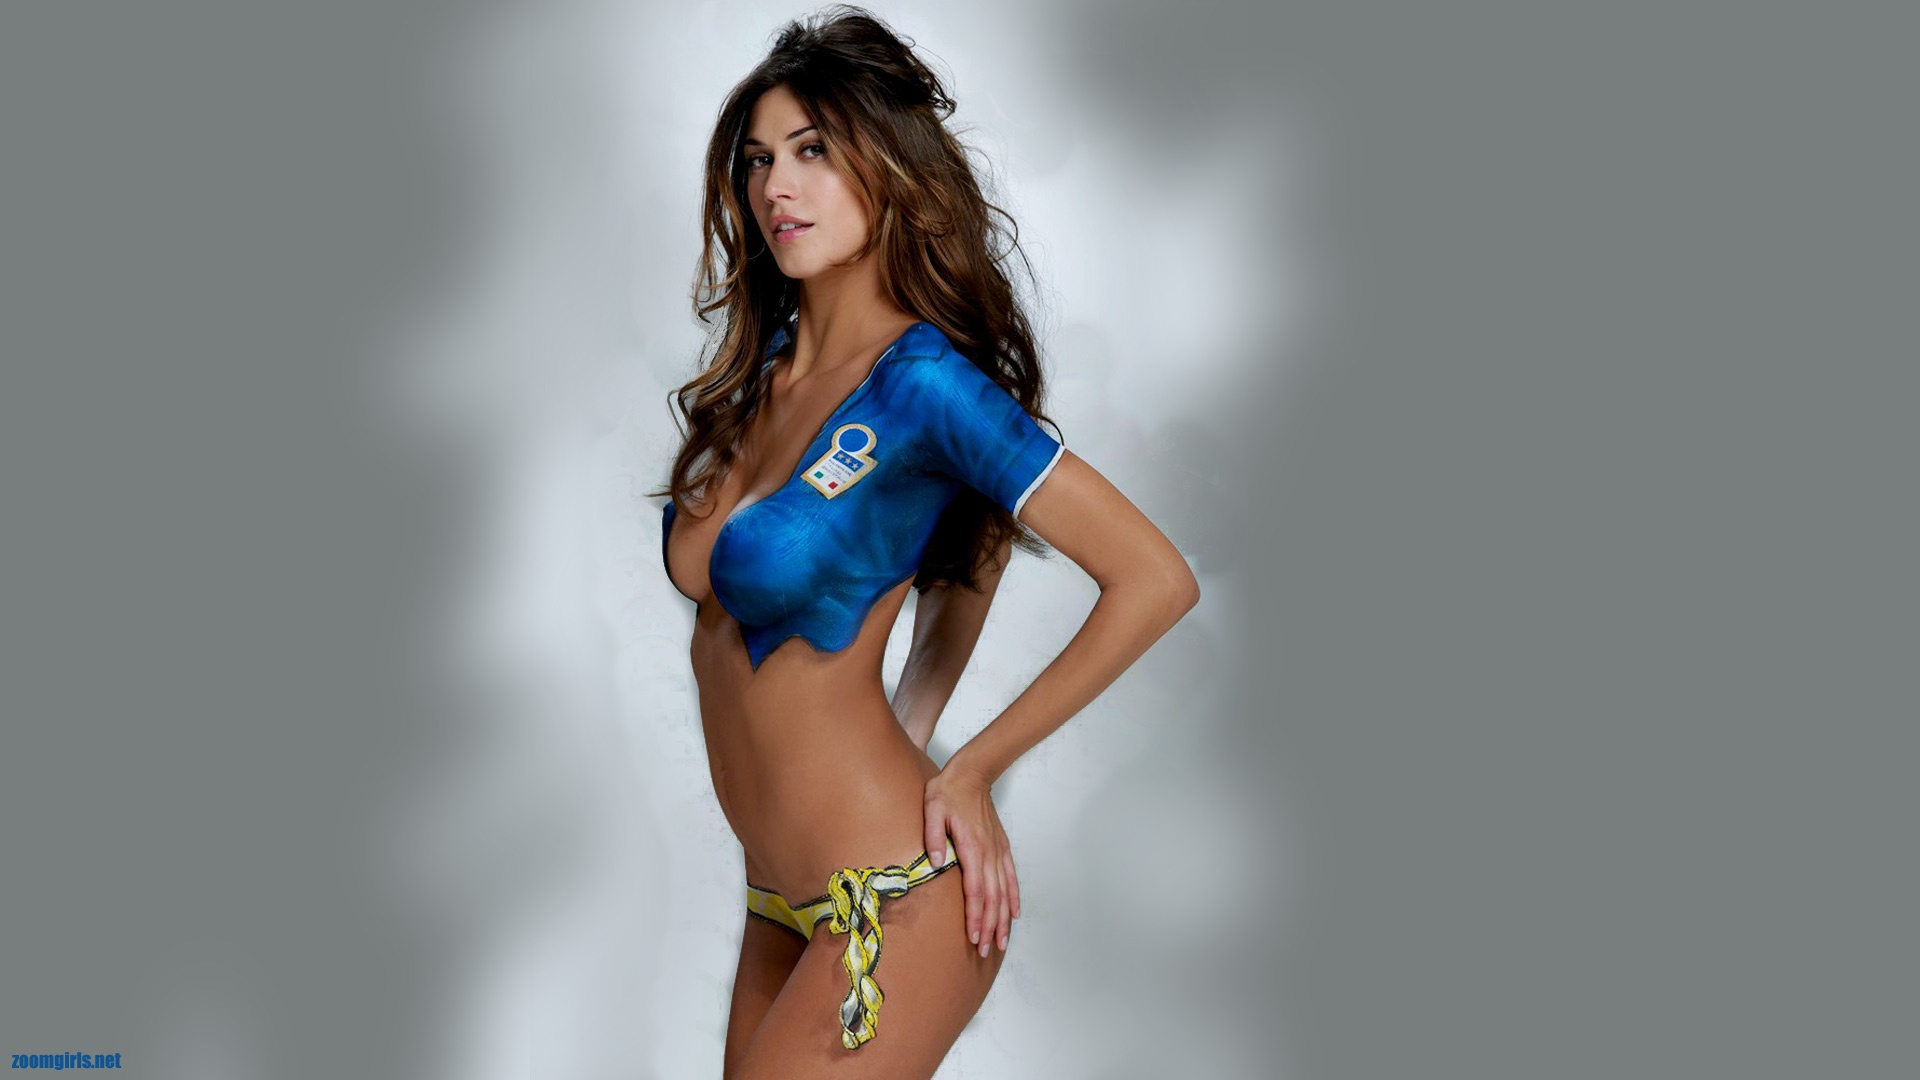 melissa satta sexy body paint italy football squad colors bikini